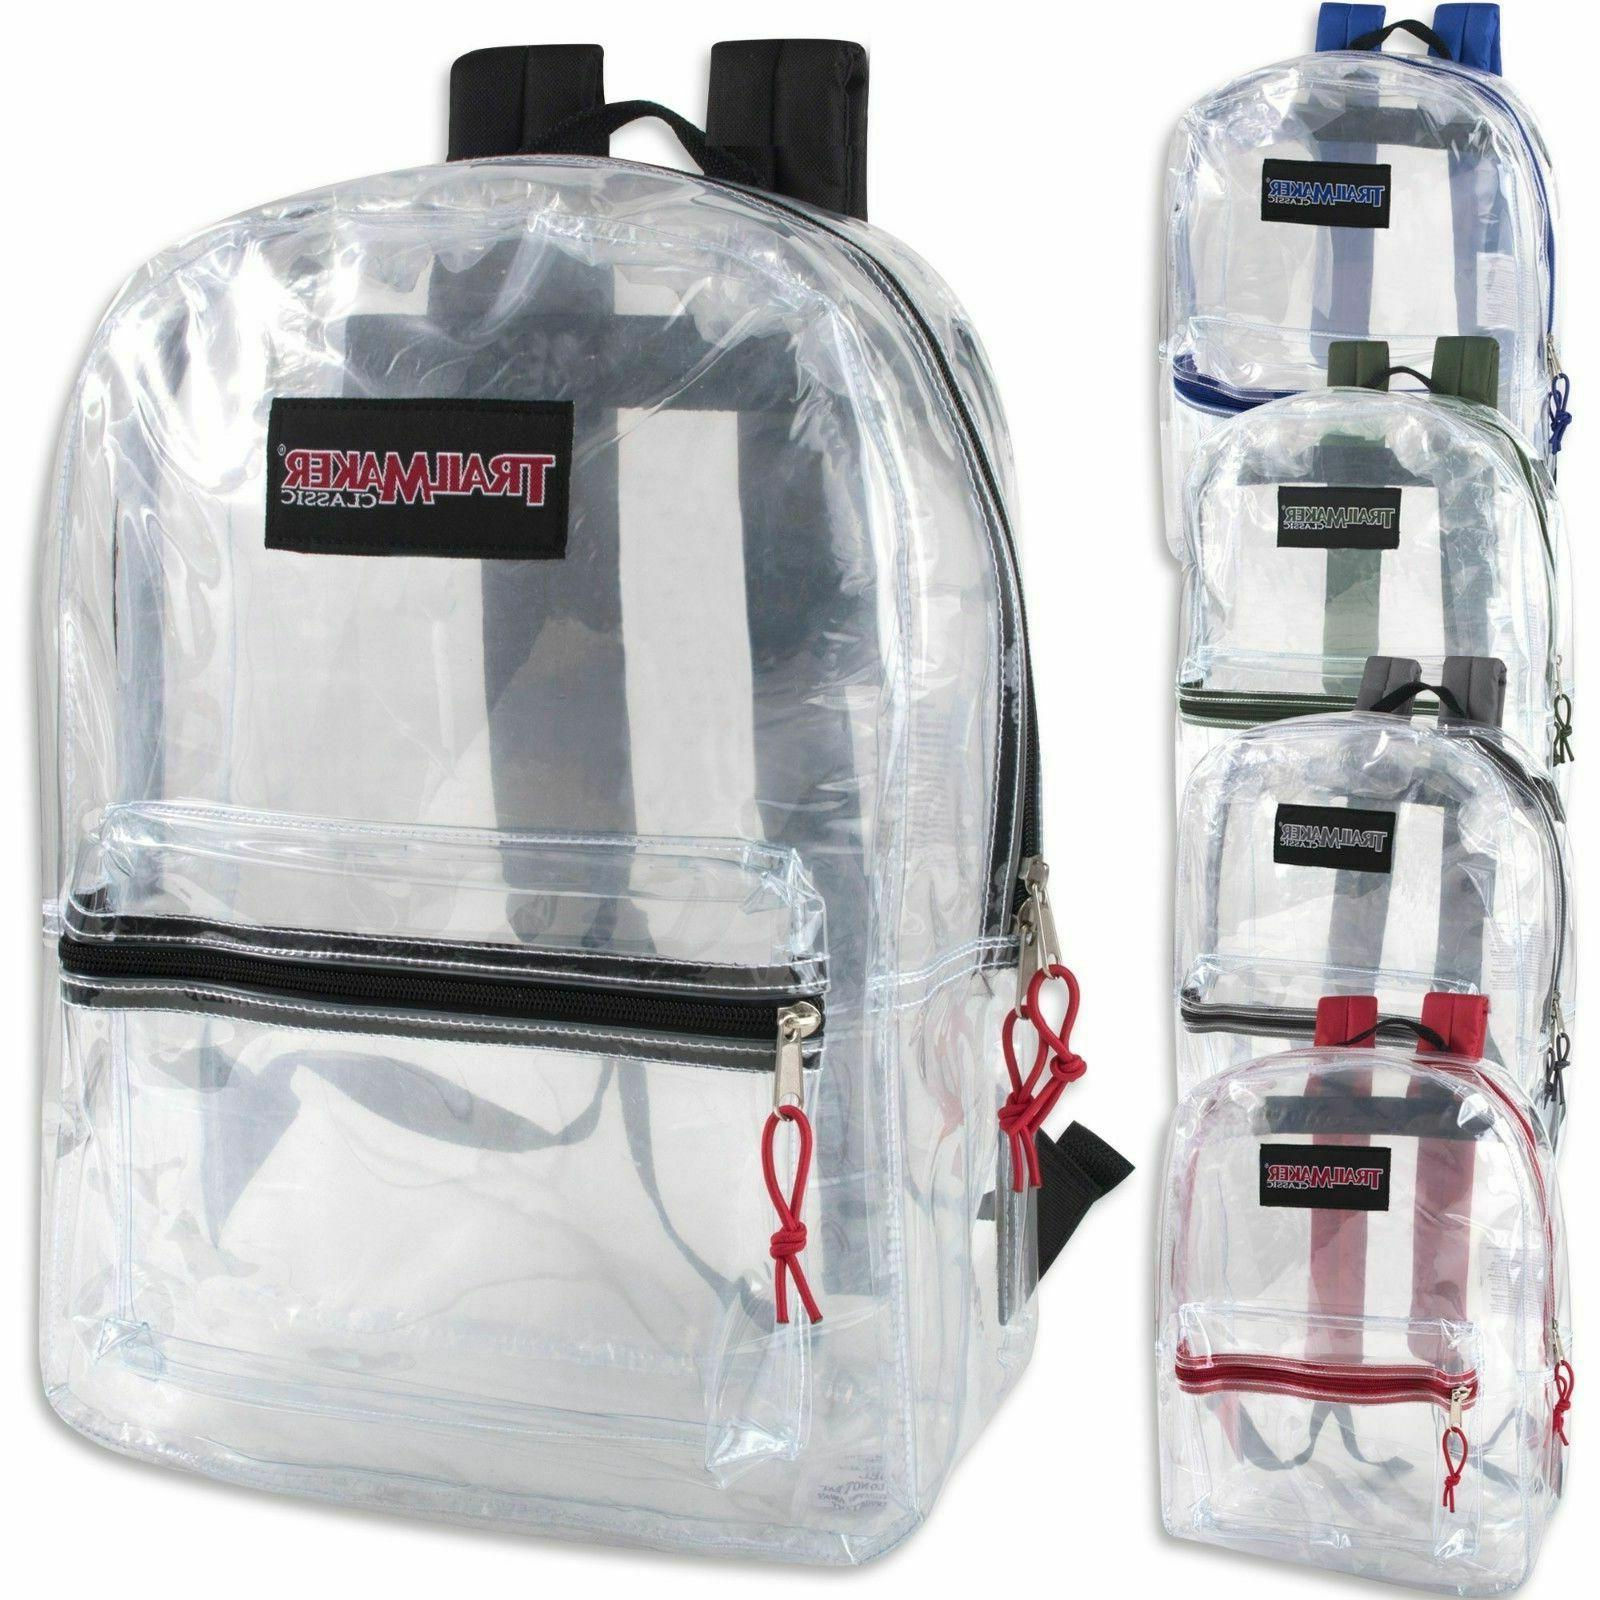 new classic 17 inch clear backpack black